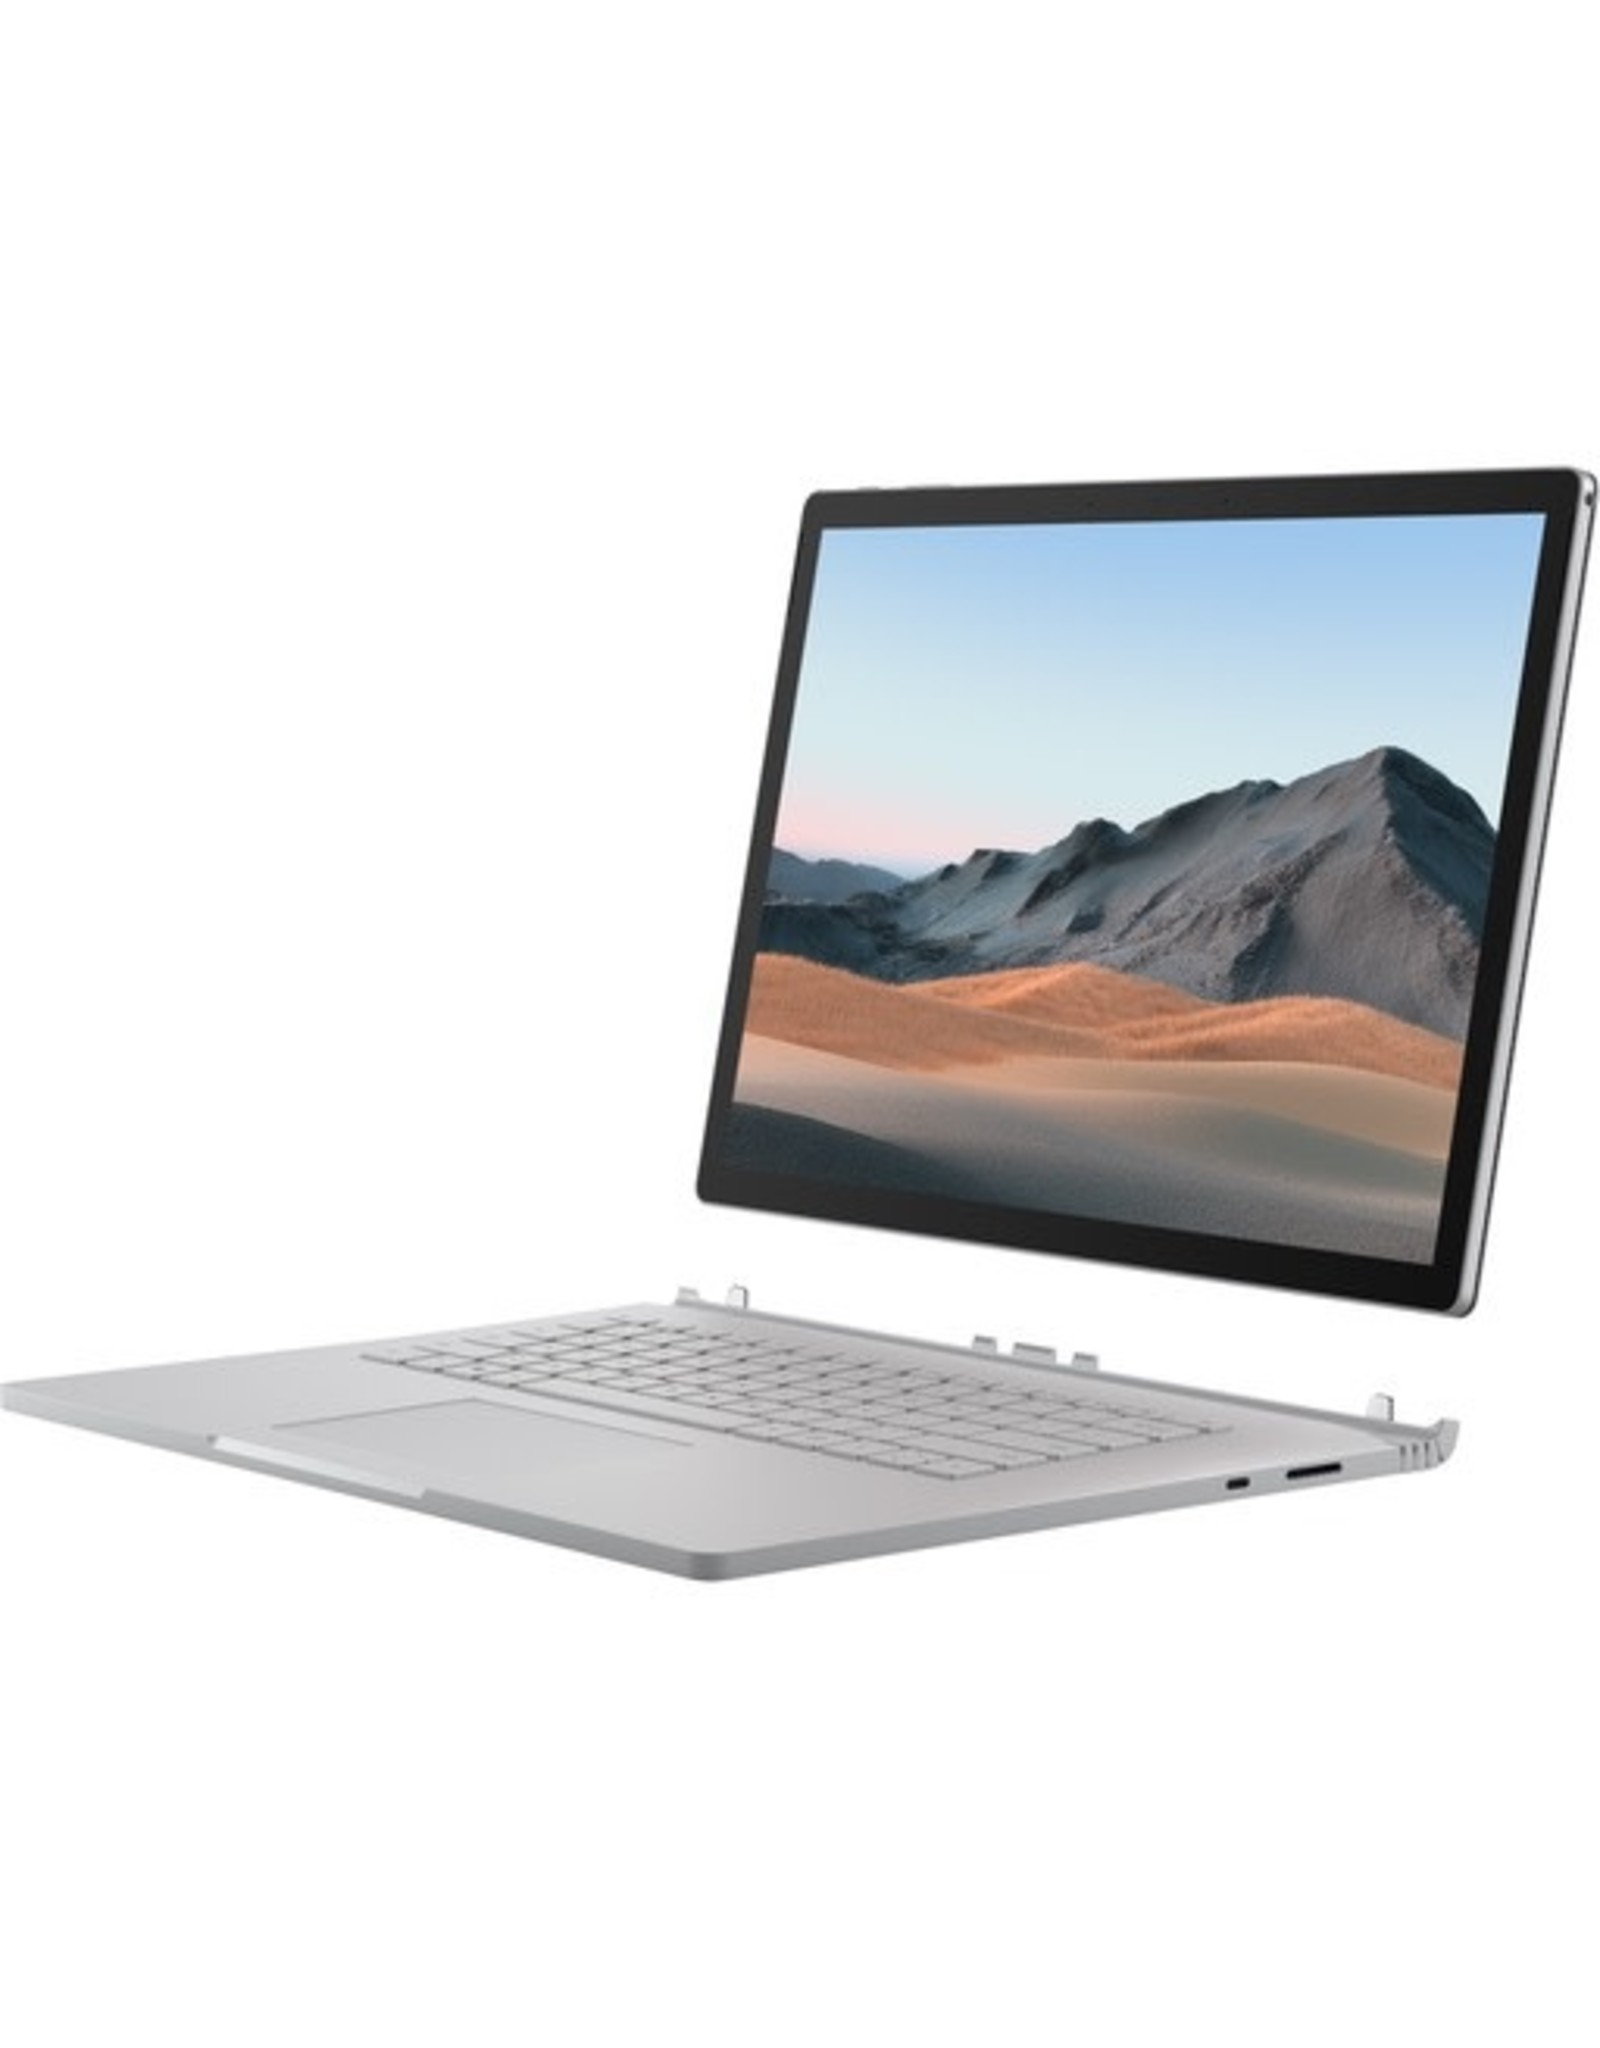 "Microsoft Inst. (Elite) Microsoft Surface Book 3: 15"" i7/32GB/512GB GPU - Platinum + 4 Yr Warranty"